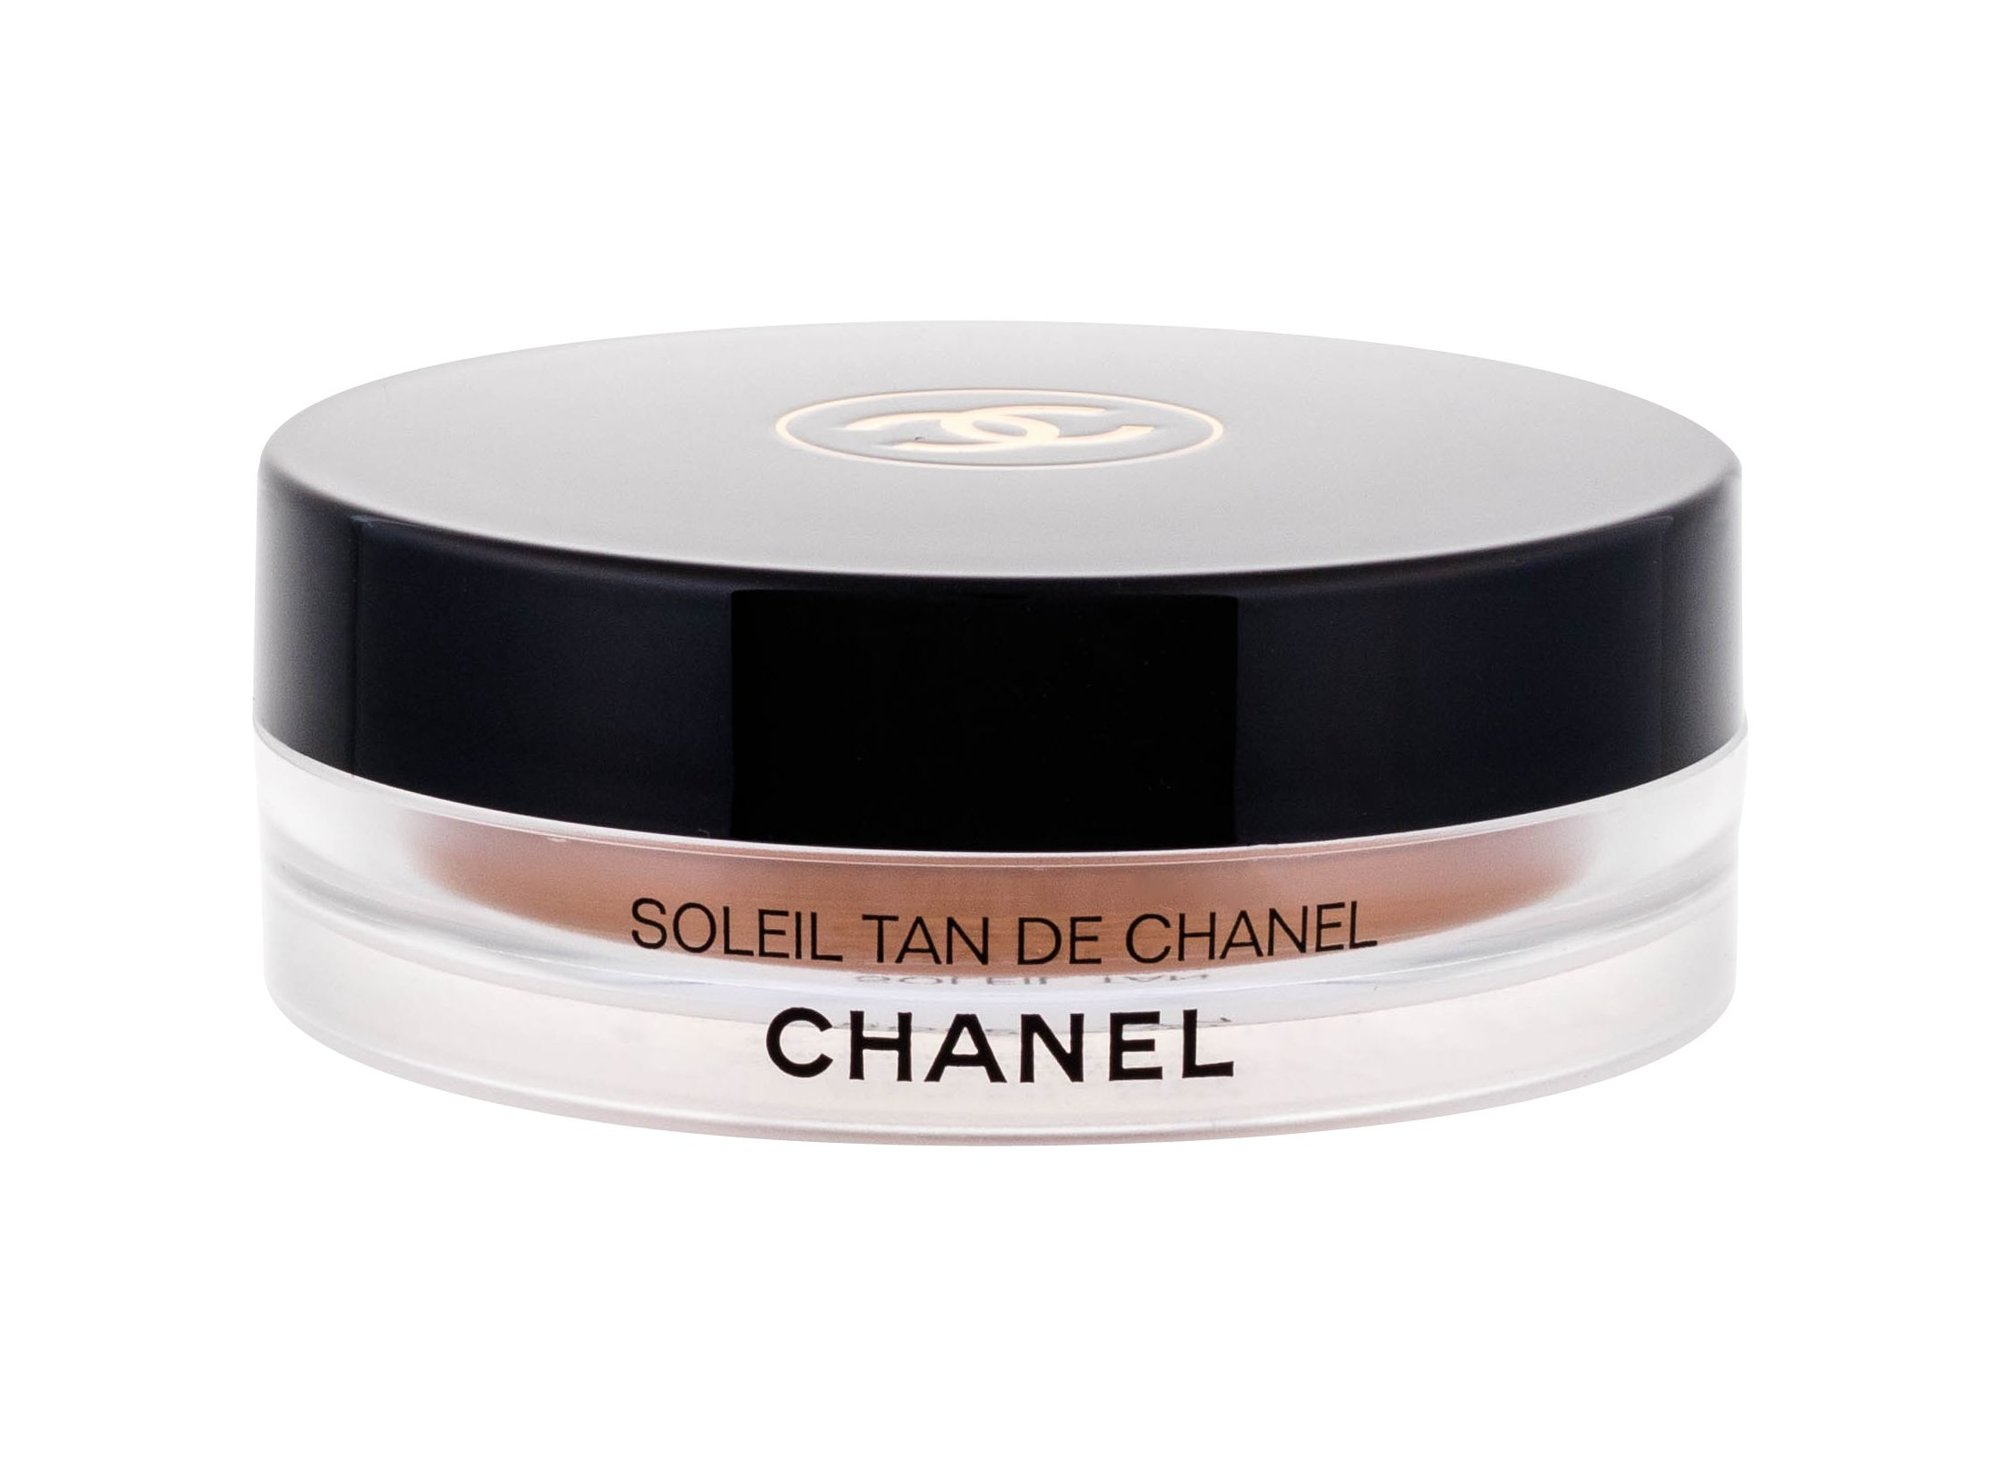 Chanel Soleil Tan De Chanel Cosmetic 30ml